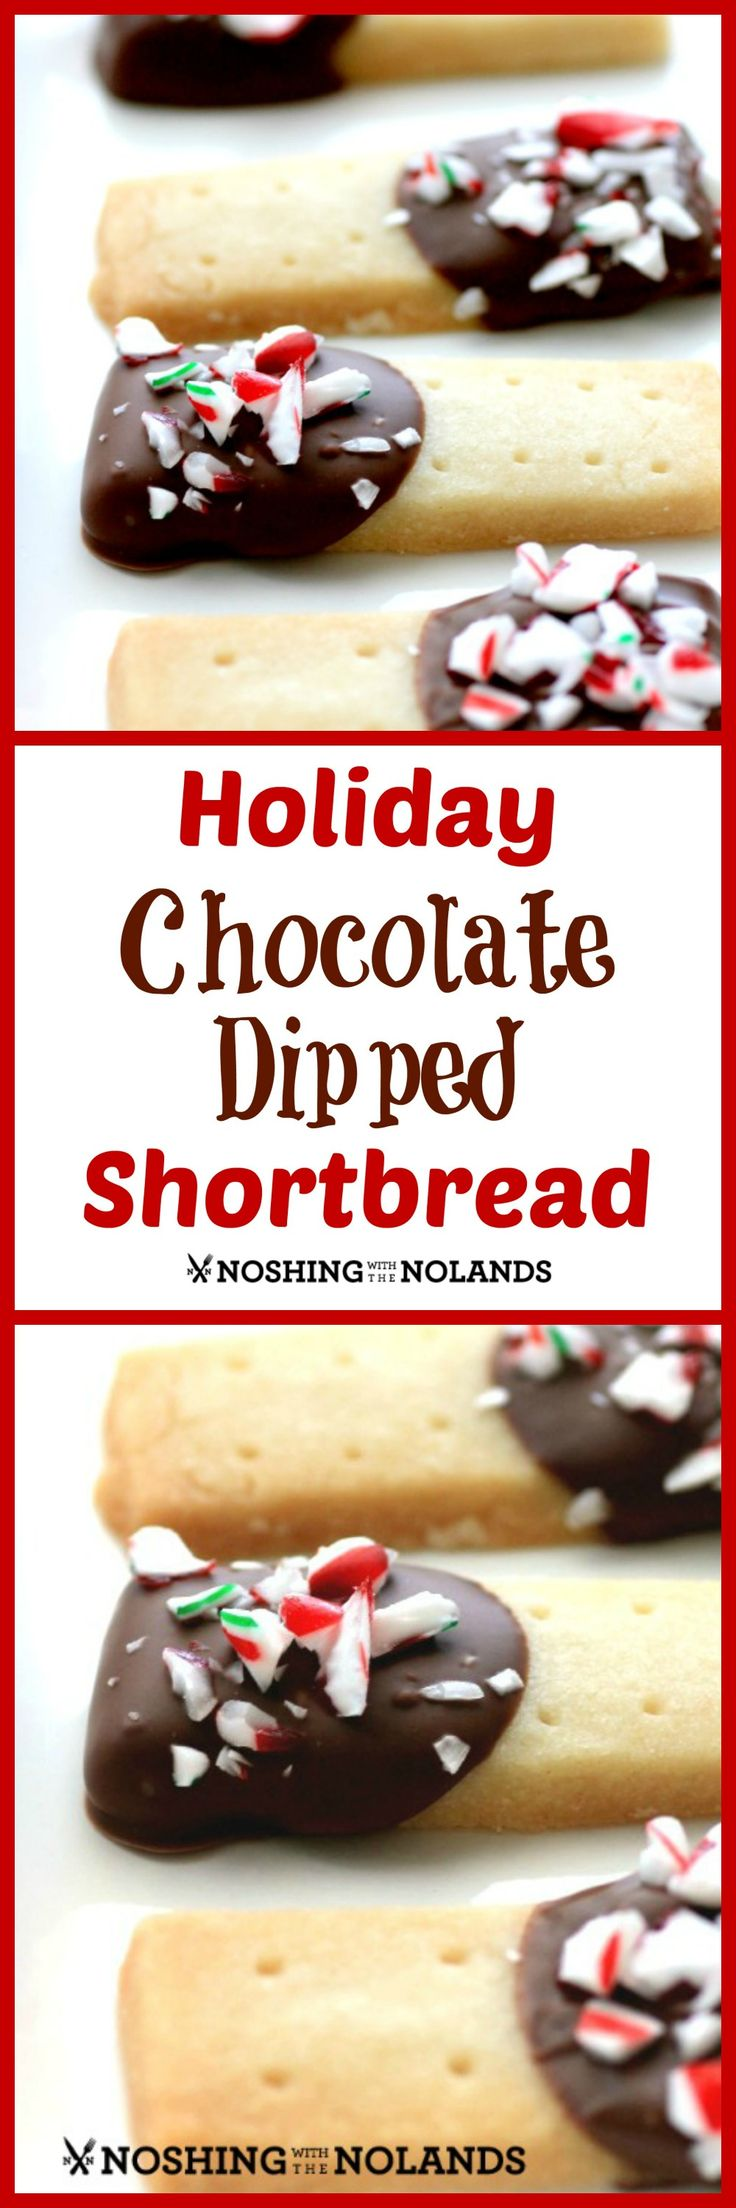 Holiday Chocolate Dipped Shortbread by Noshing With The Nolands is a fun Christmas shortbread that will be a hit on your cookie trays!!